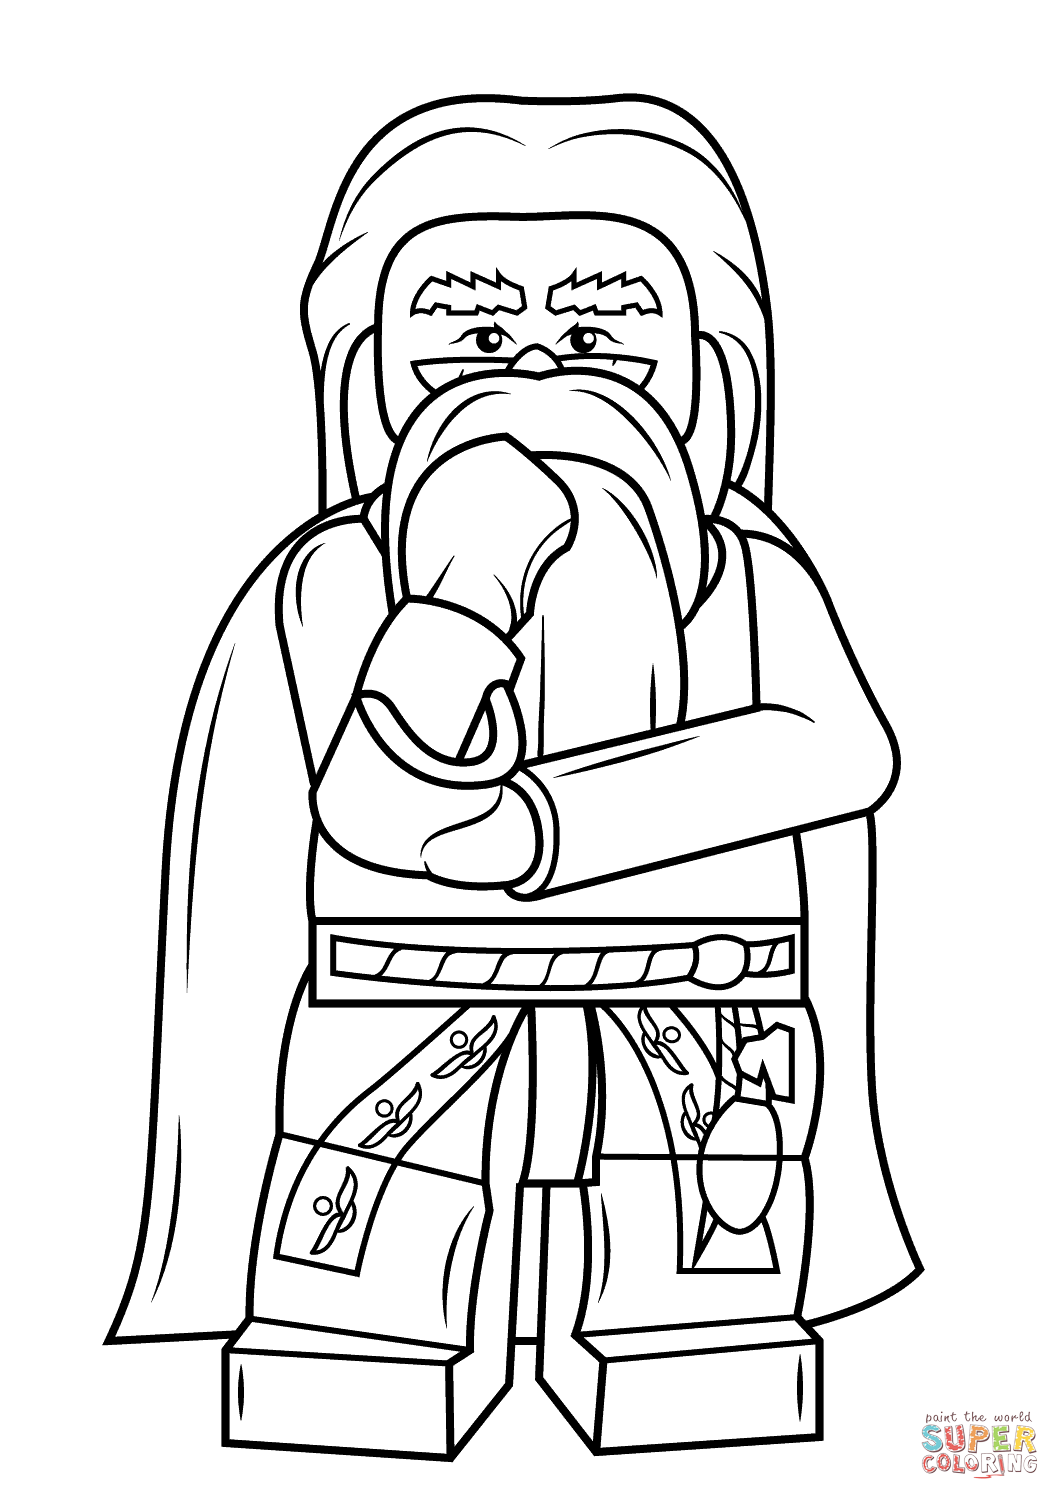 Lego Albus Dumbledore Coloring Page Free Printable Pages